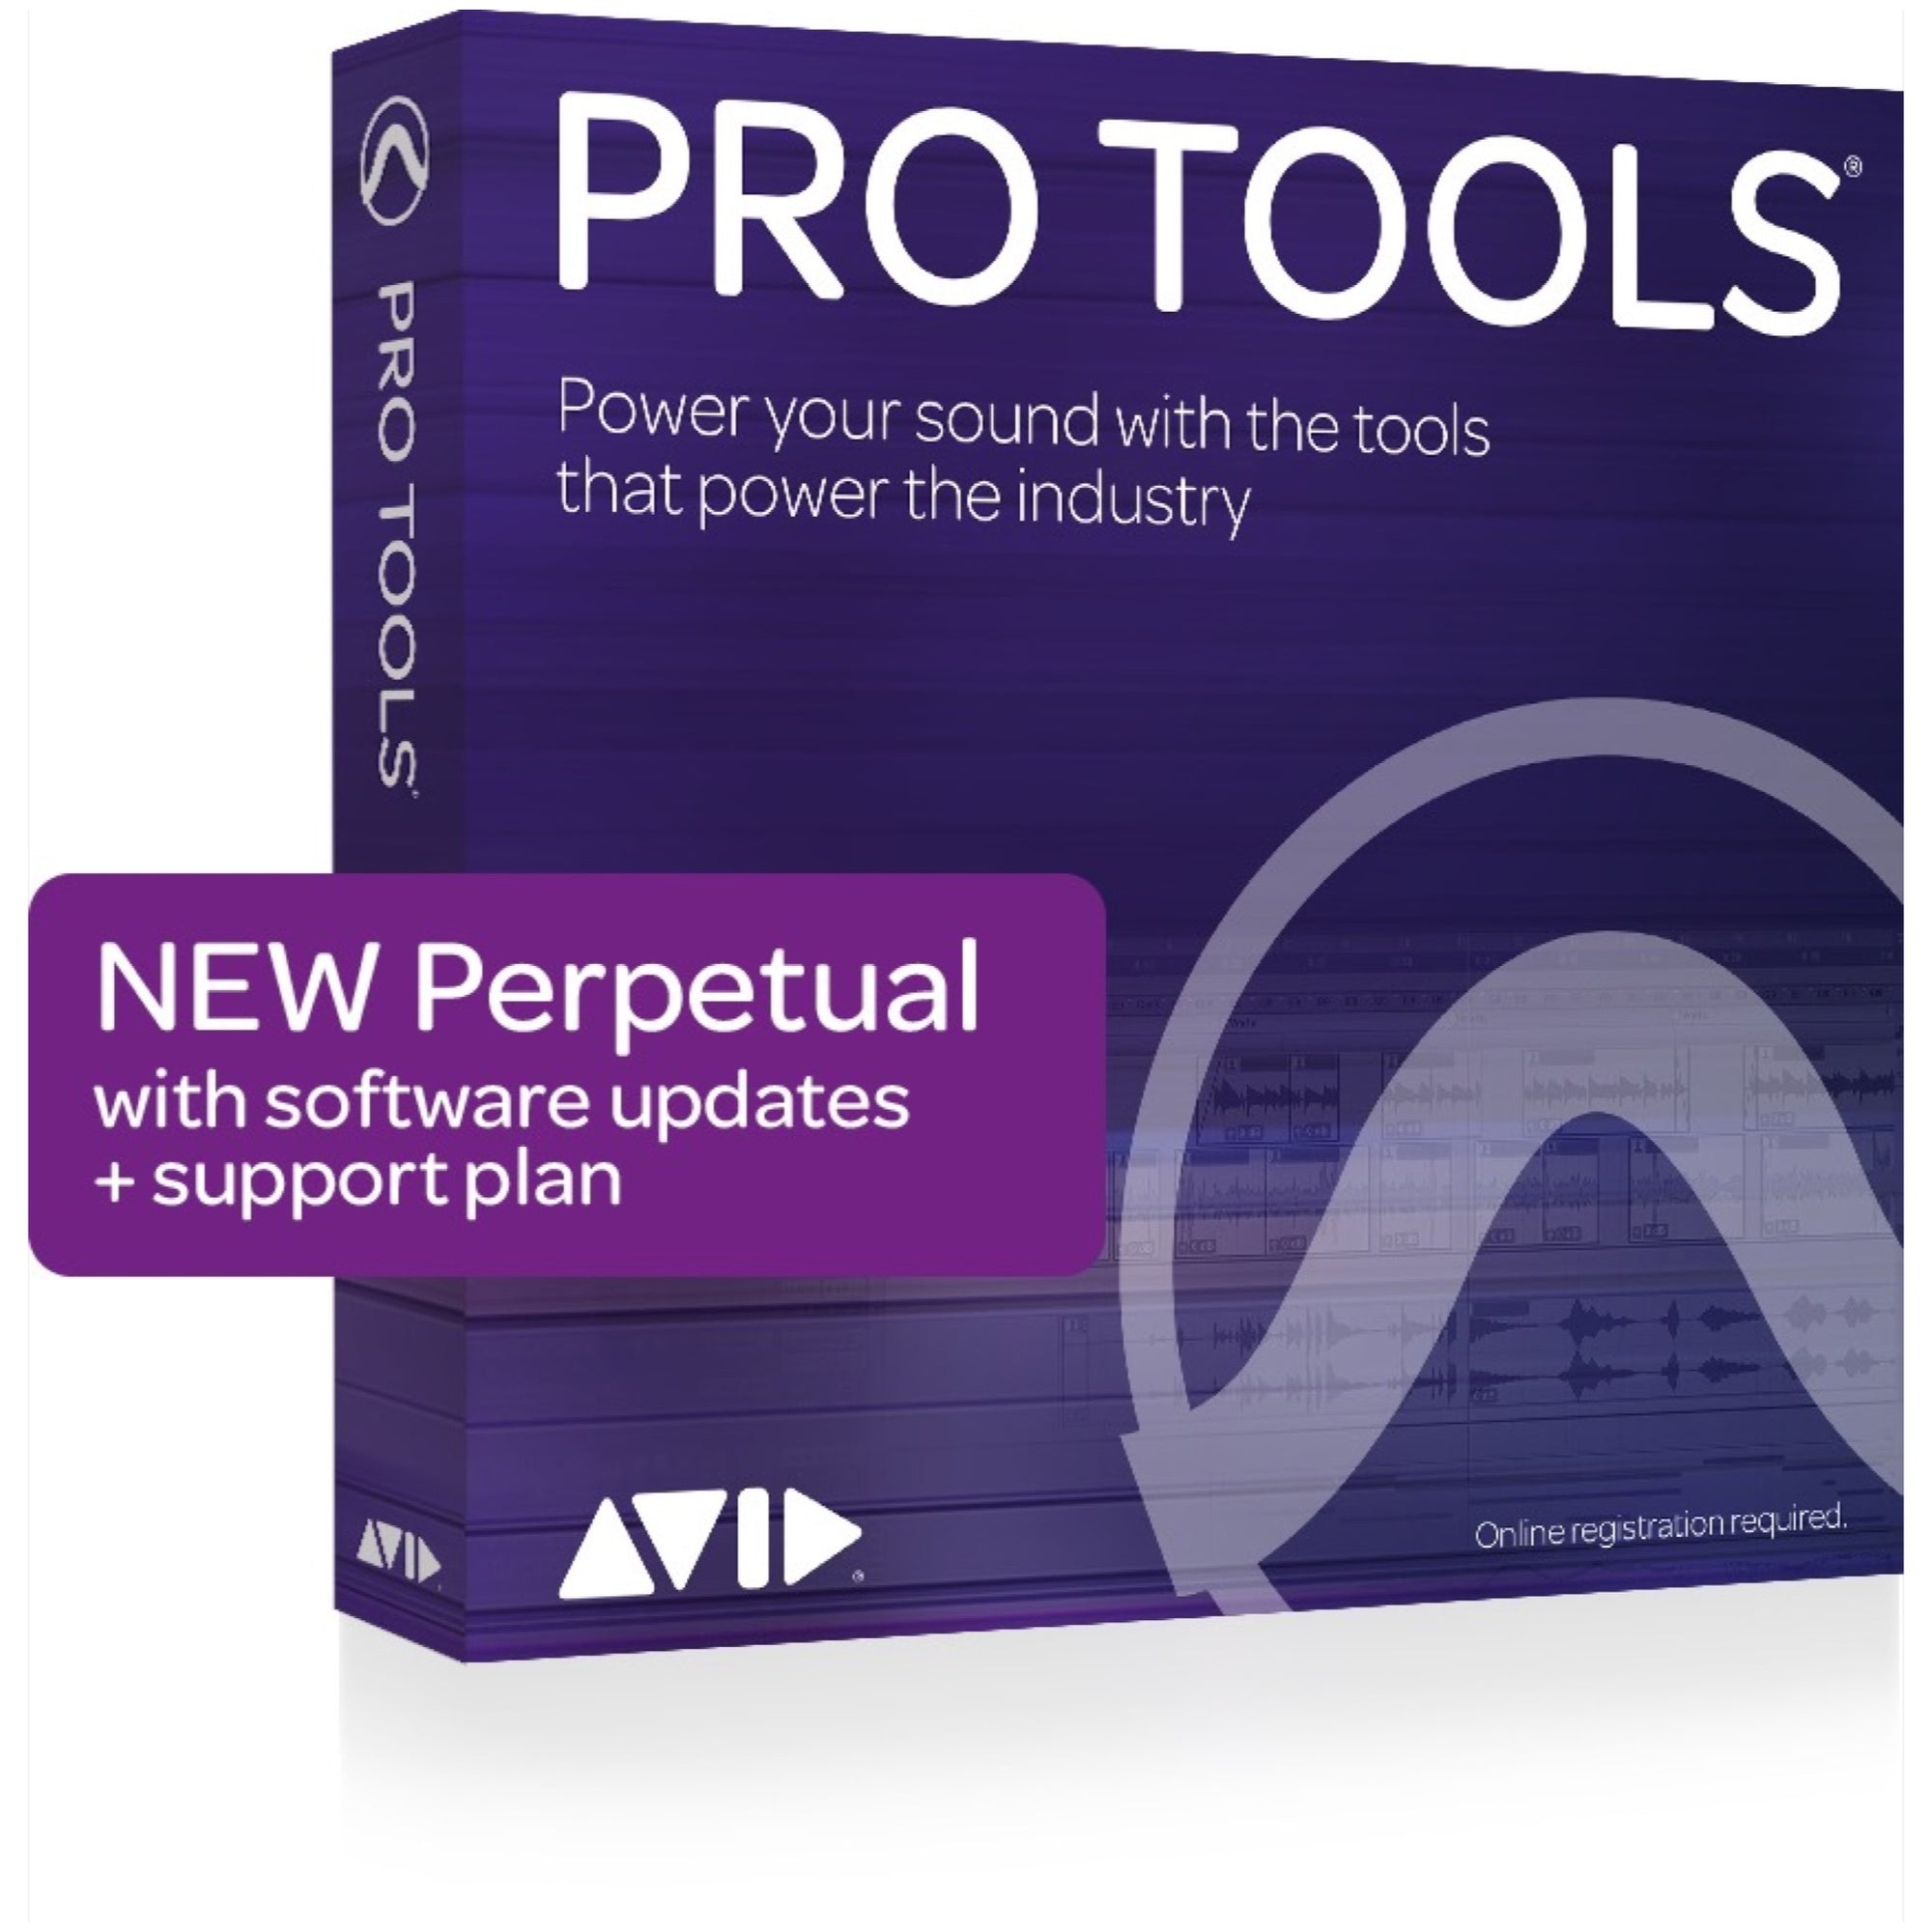 Avid Pro Tools Music Production Software (Perpetual License) with 1 Year of Upgrades